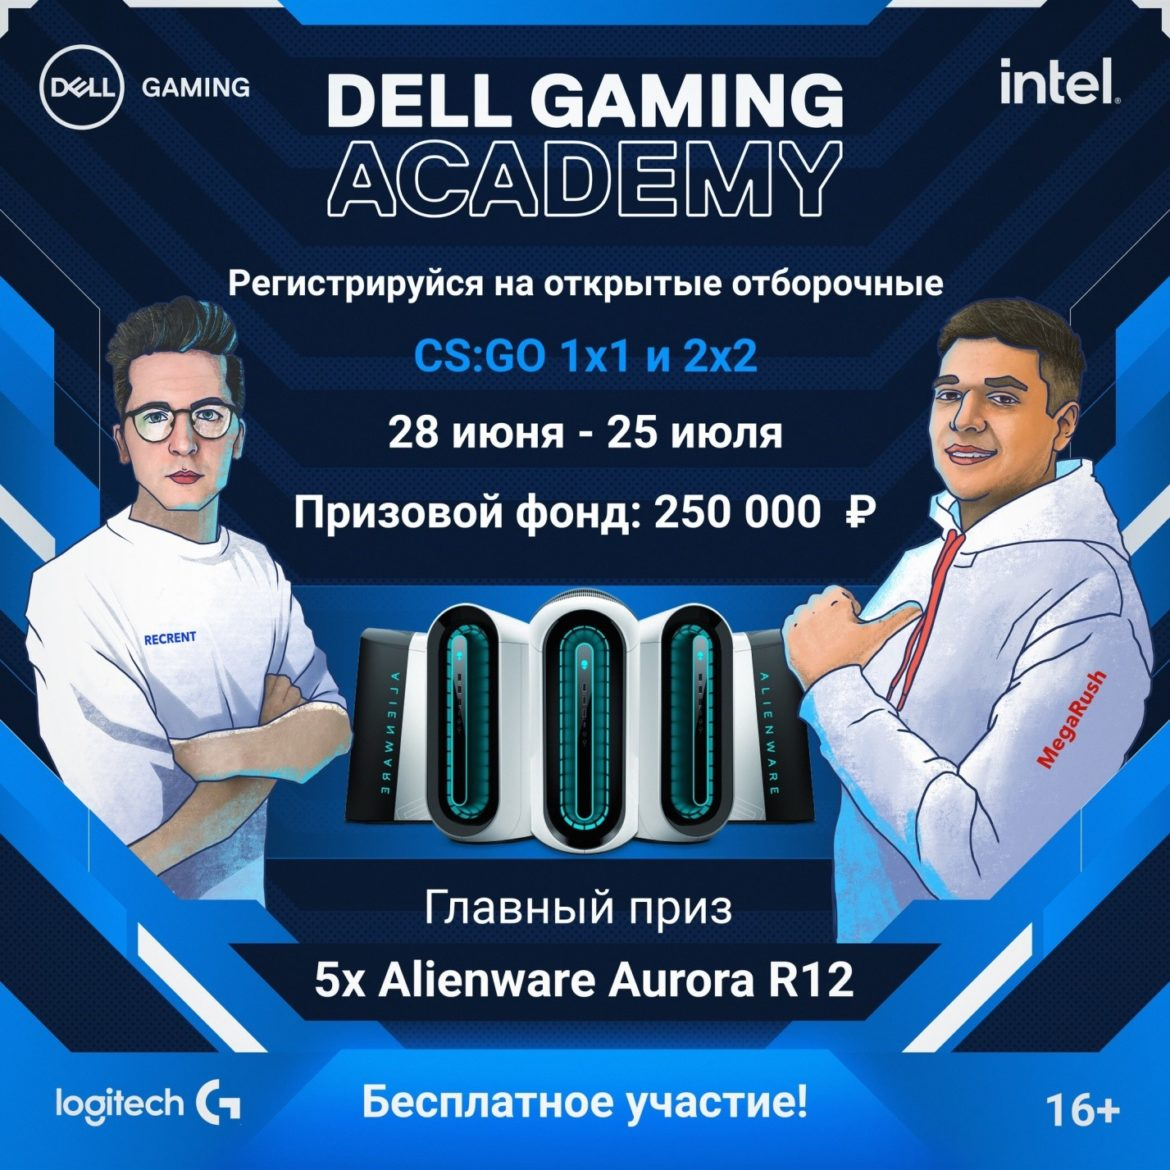 Dell Gaming Academy